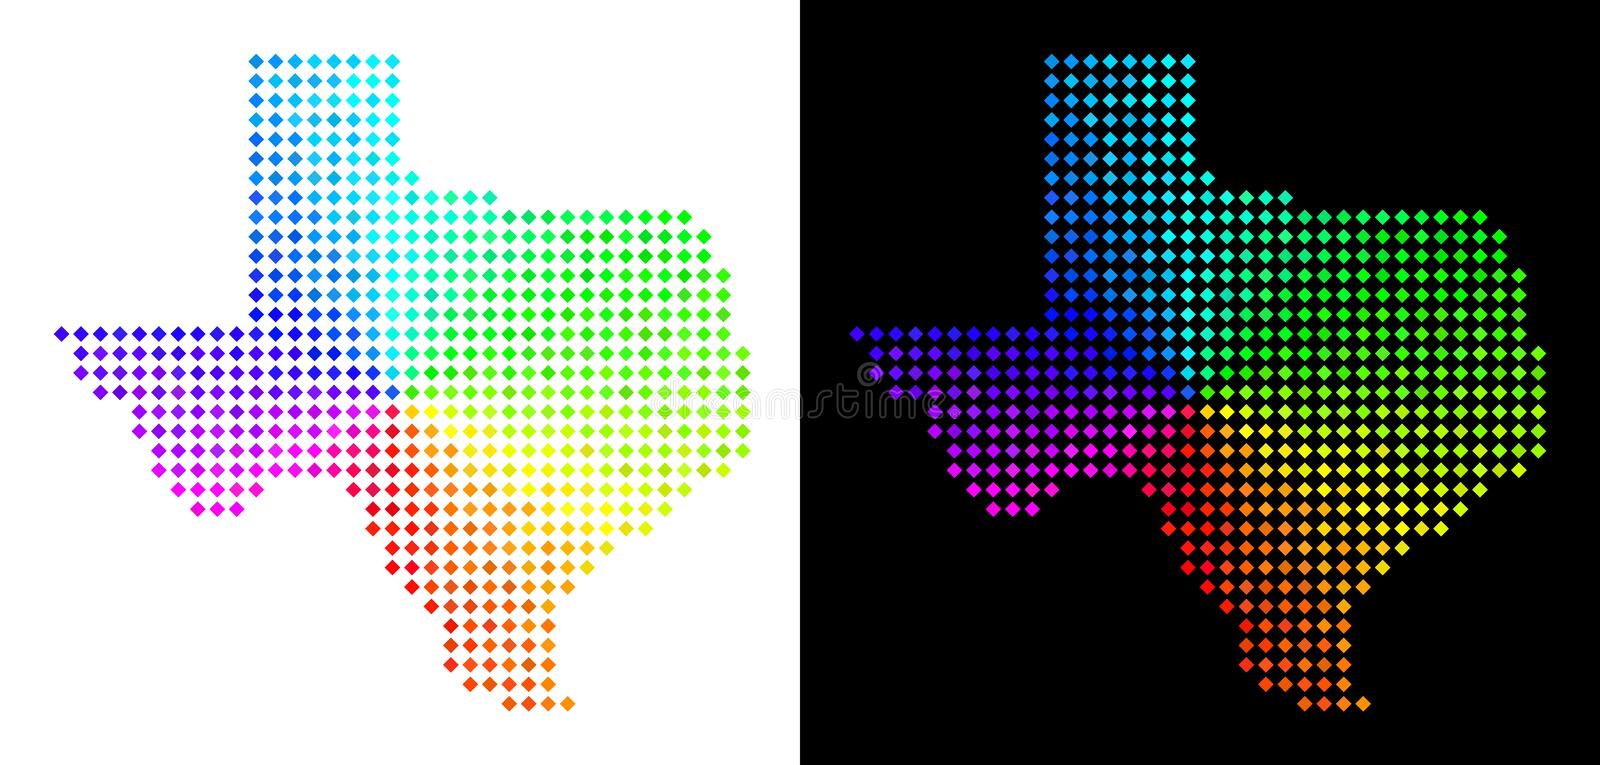 Spectral Pixelated Texas Map royalty free illustration